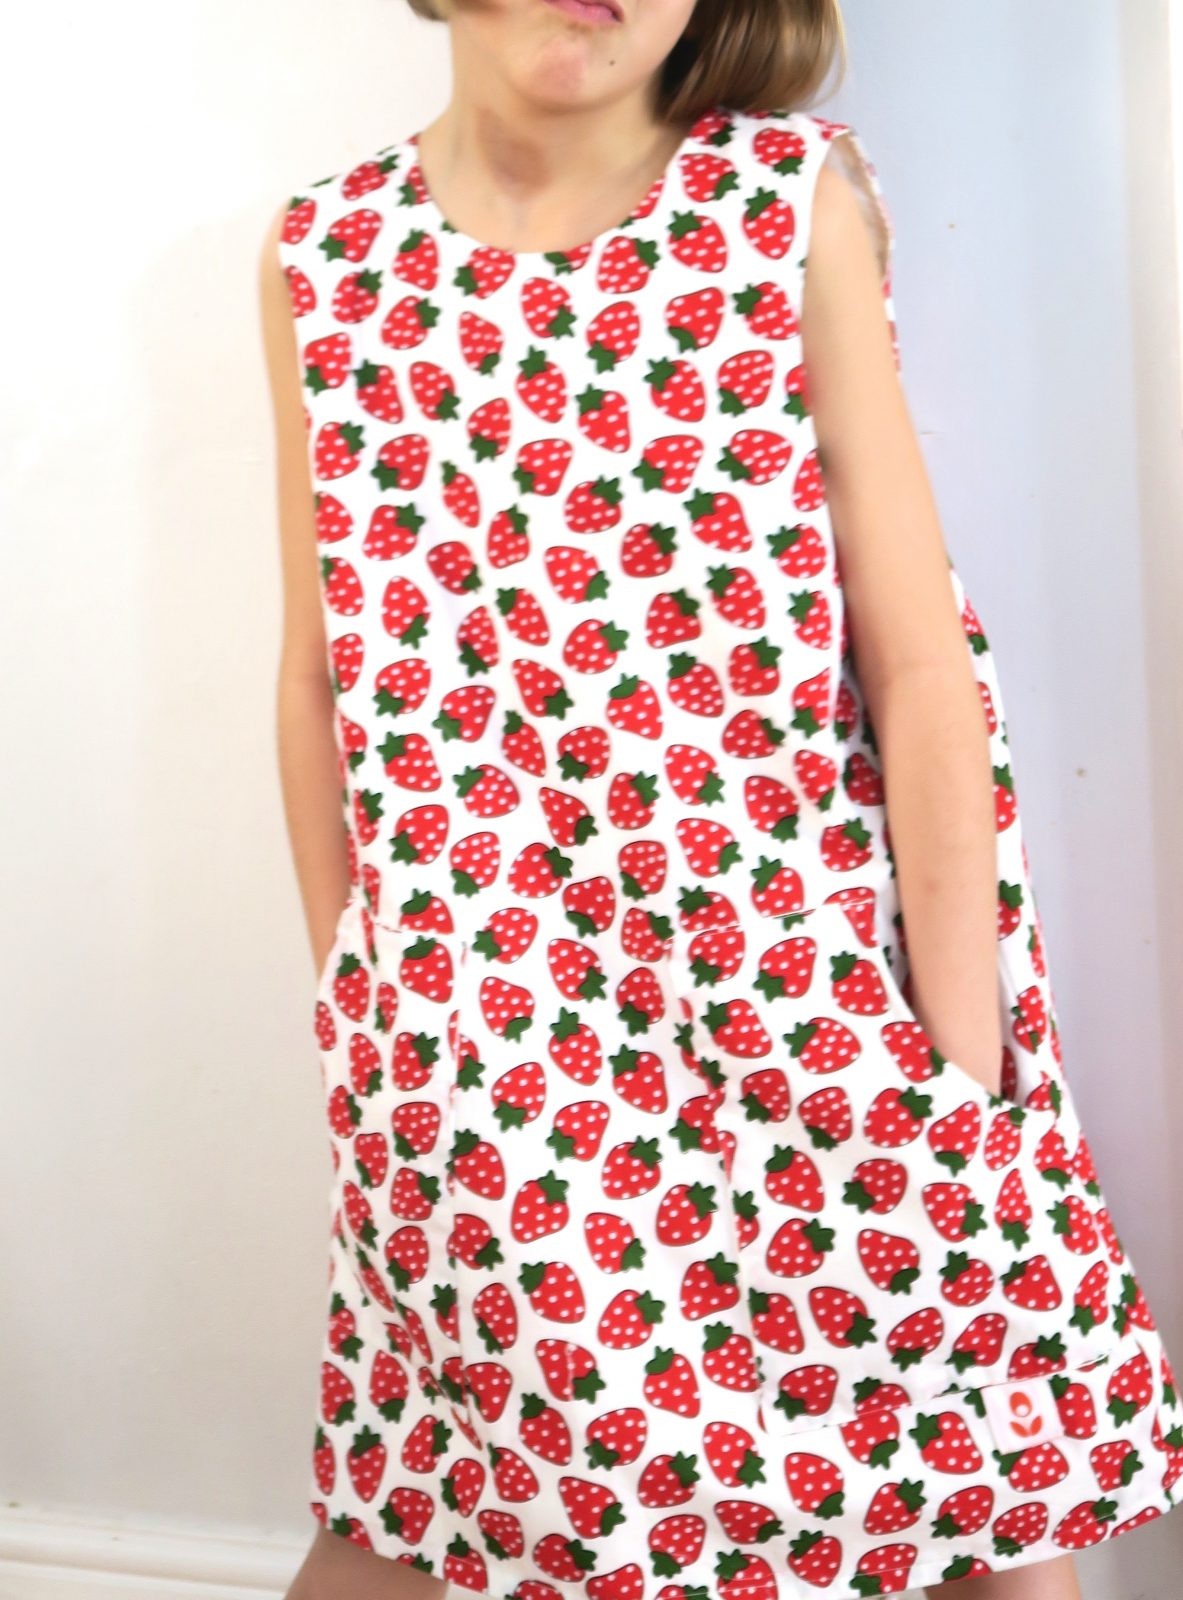 Strawberry Pinafore With Pockets made with Printed Cotton